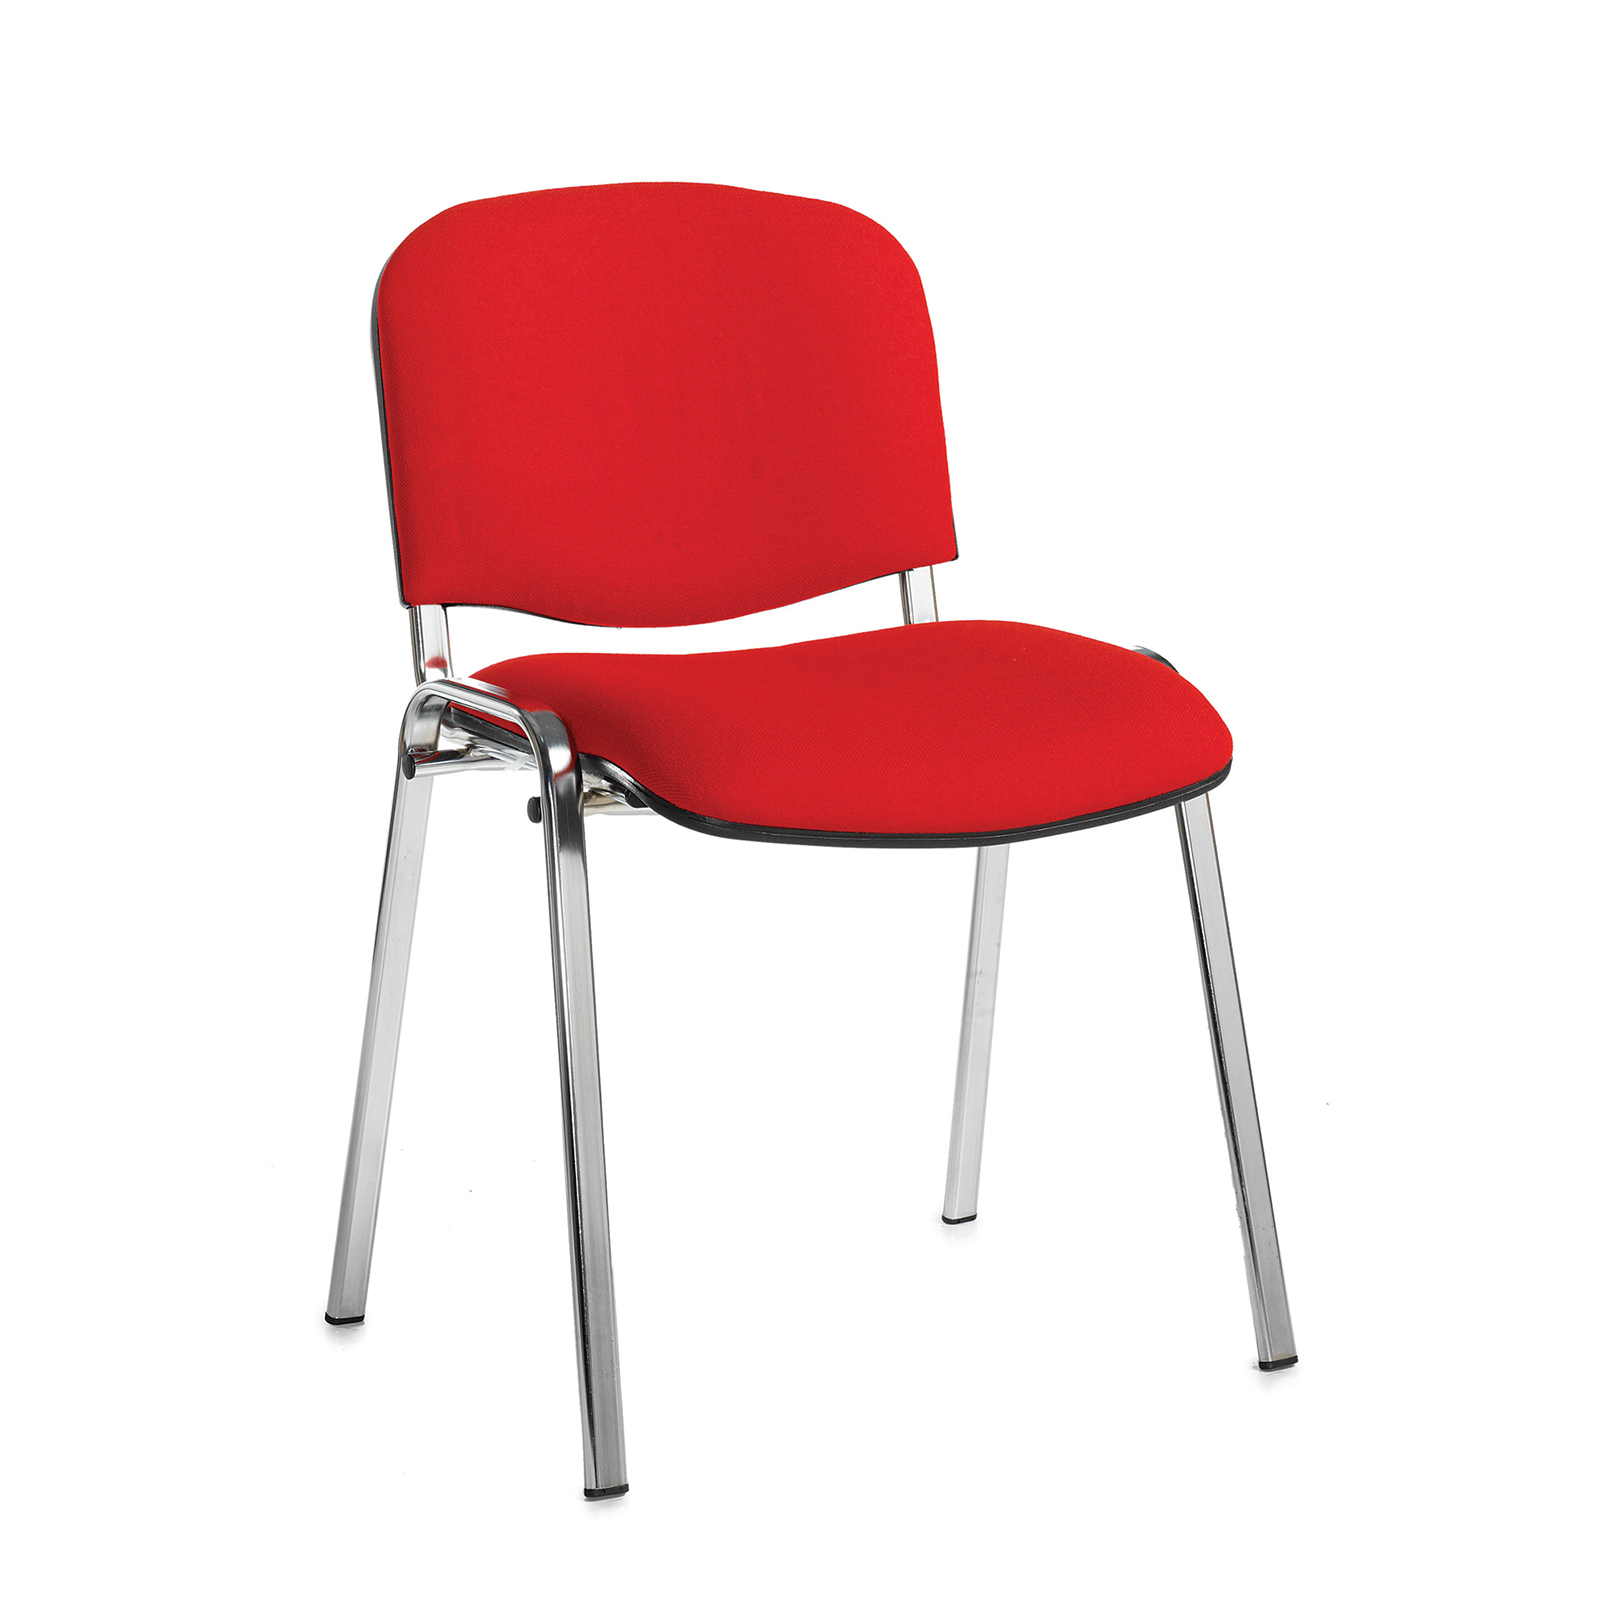 Taurus meeting room stackable chair with chrome frame and no arms - red